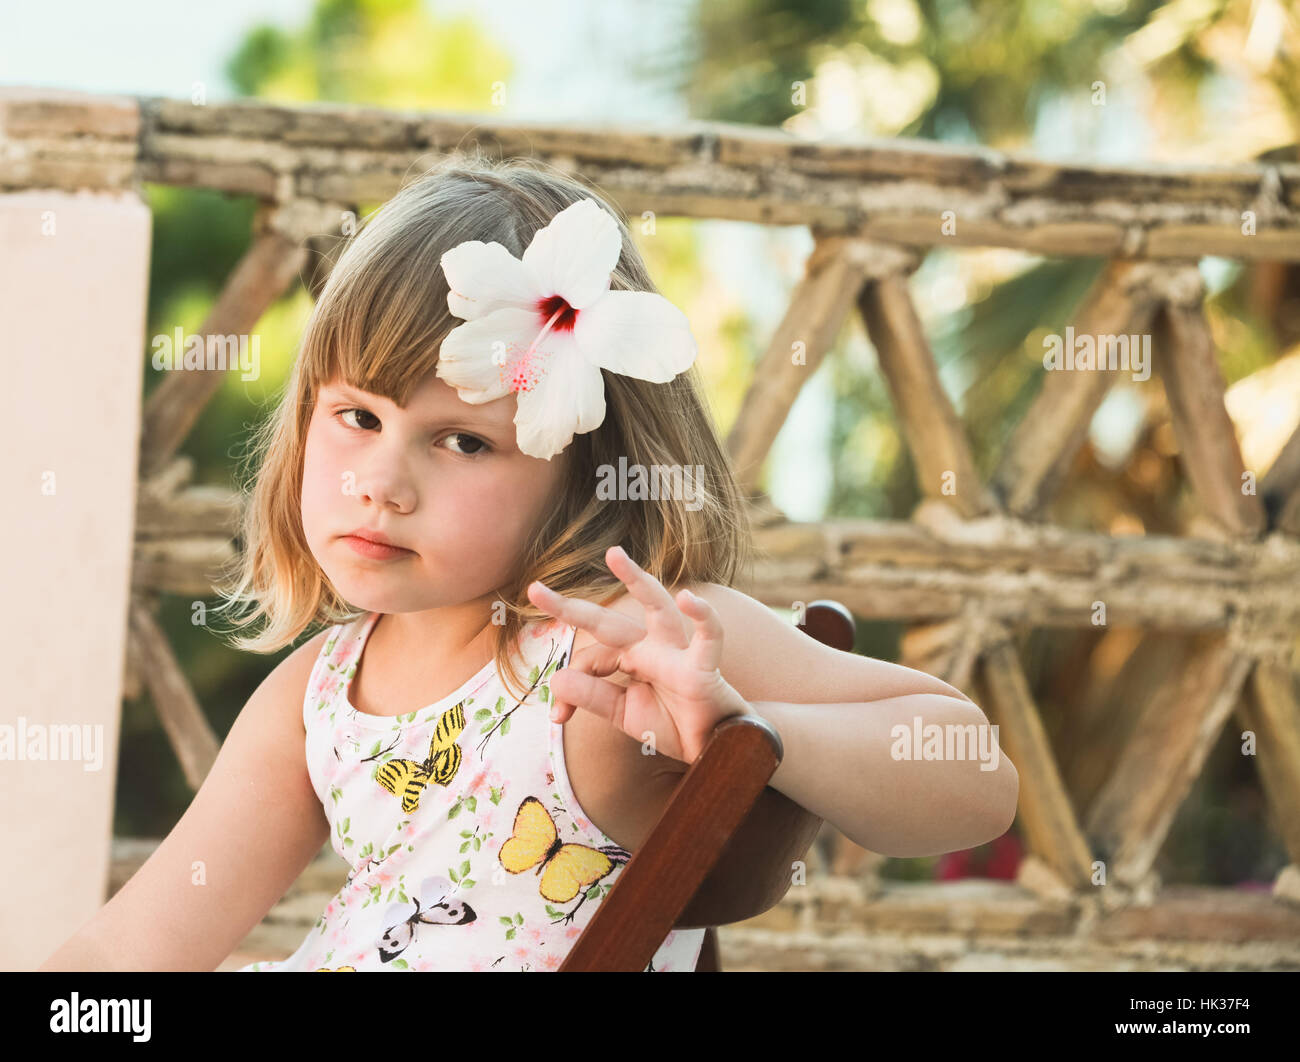 Serious Caucasian Little Girl With White Flower In Hair Outdoor